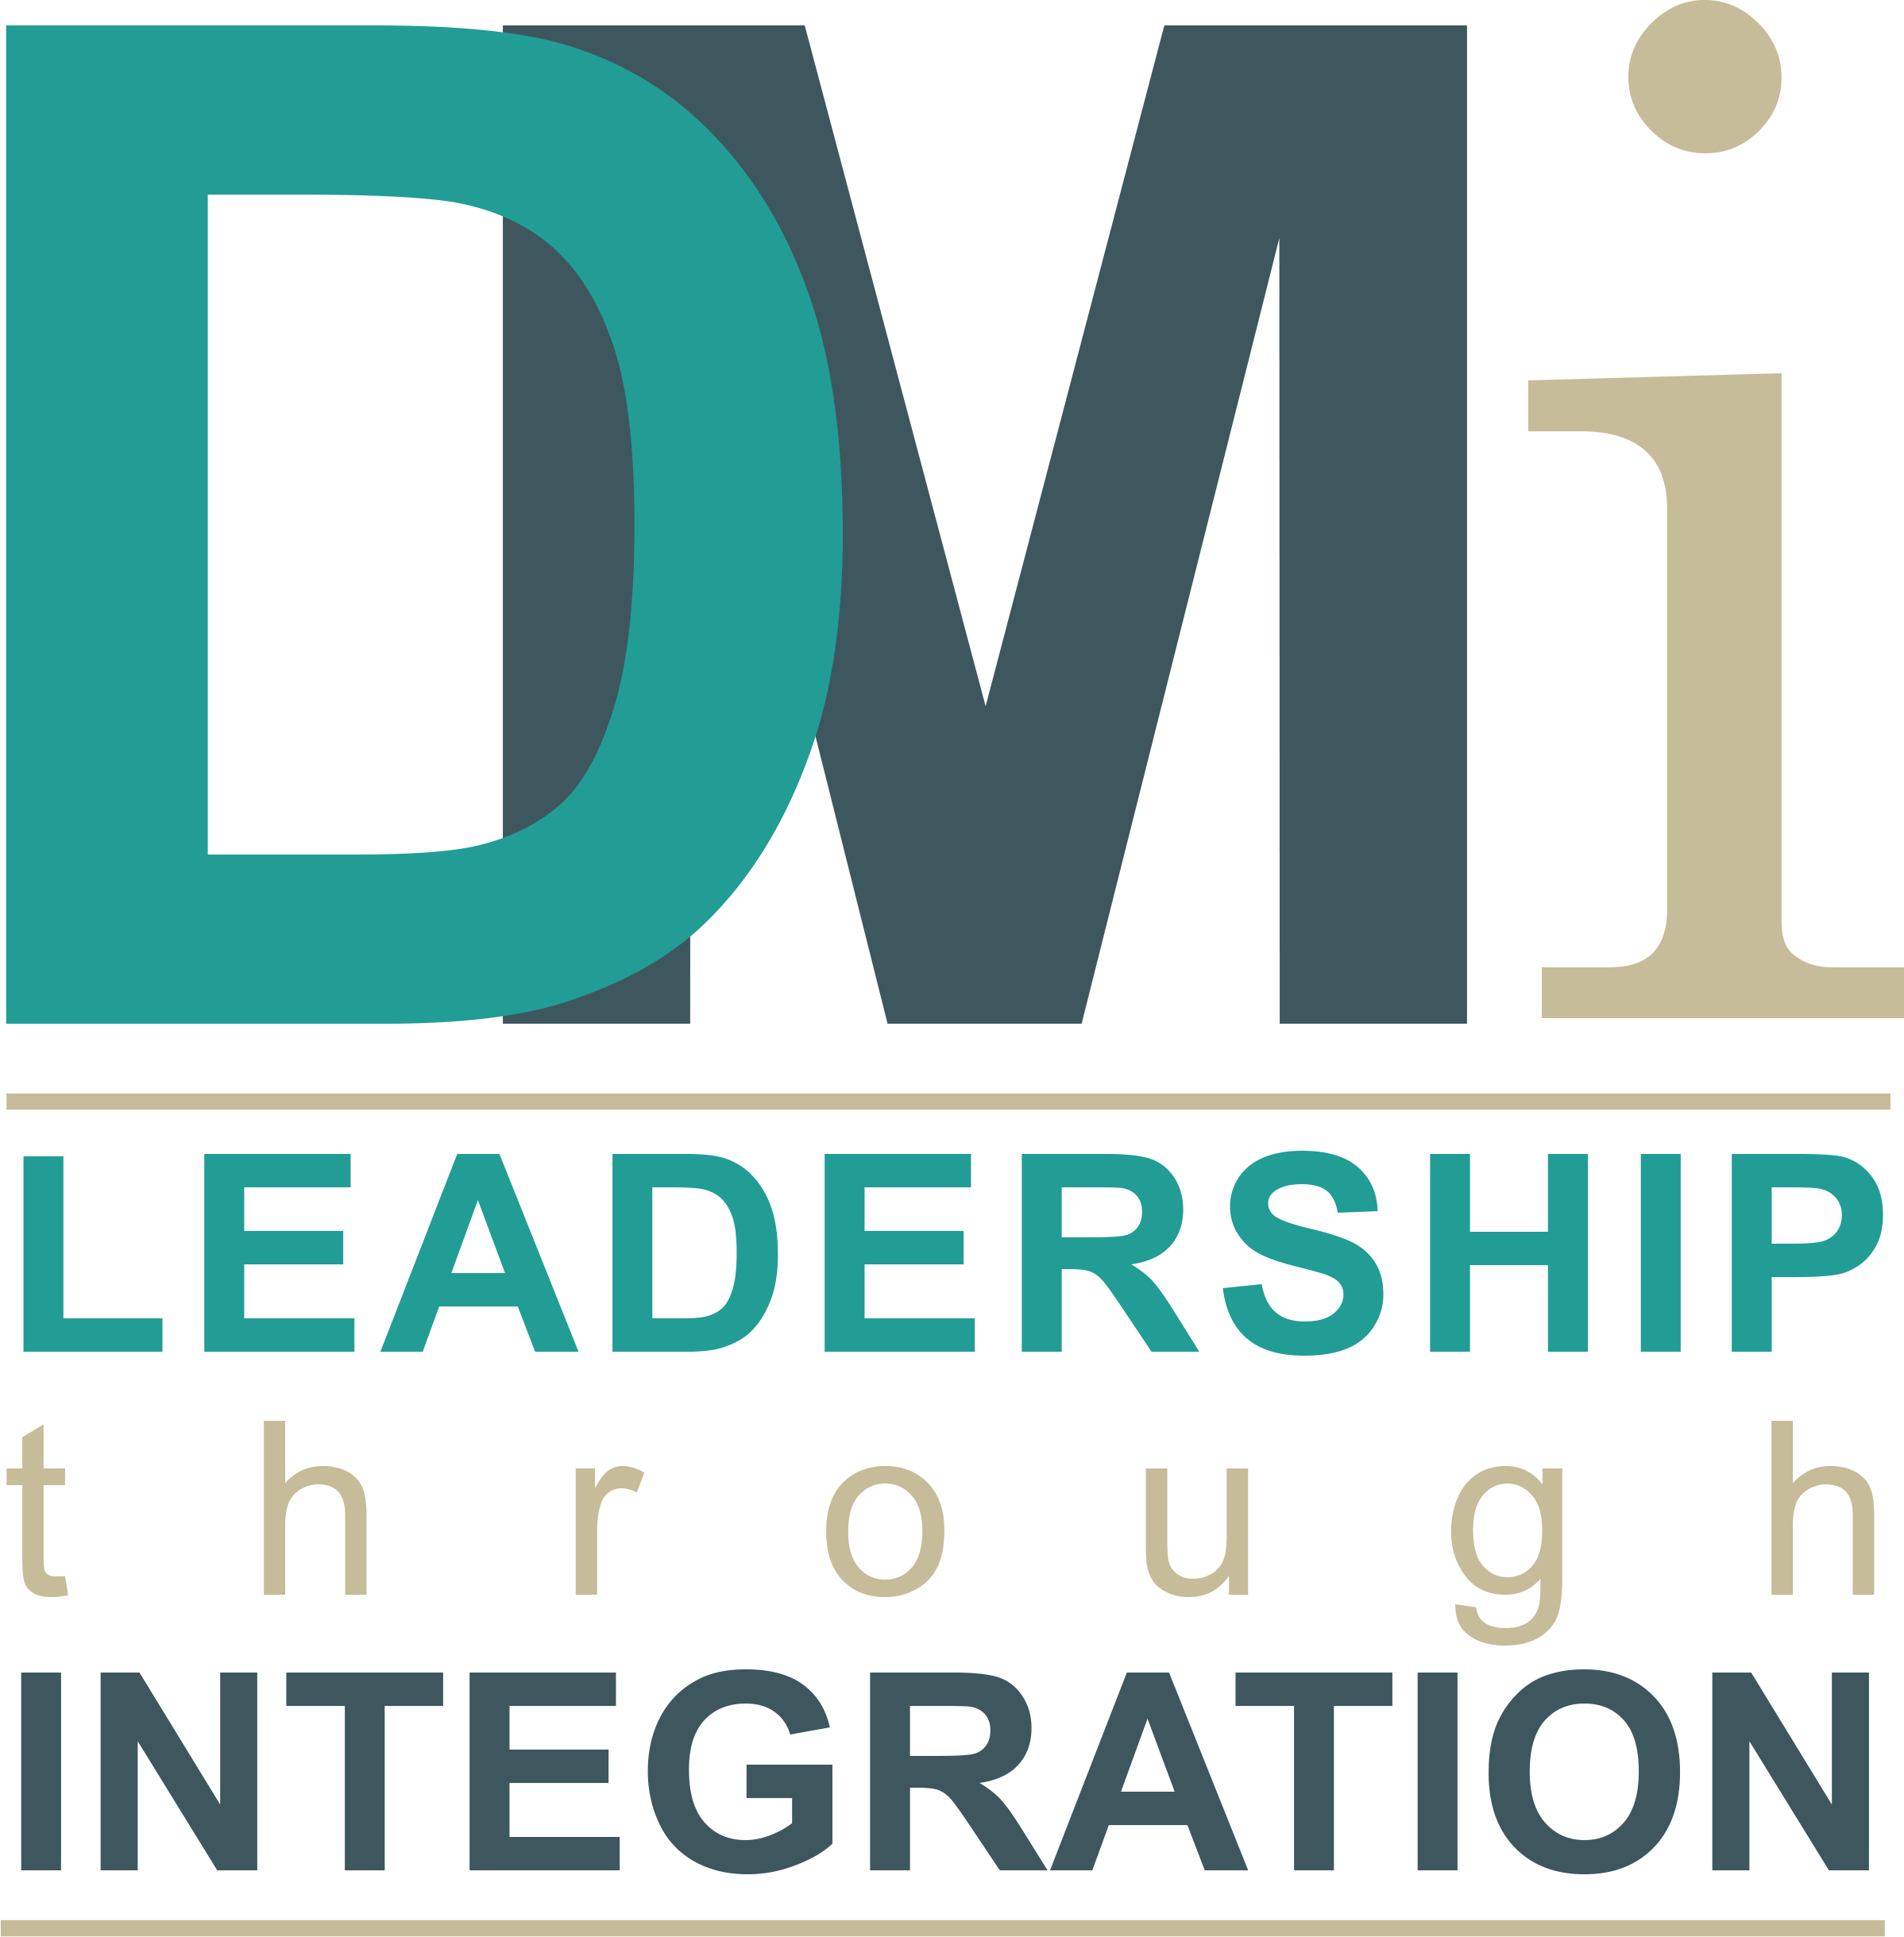 DM Integration - Leadership through Integration